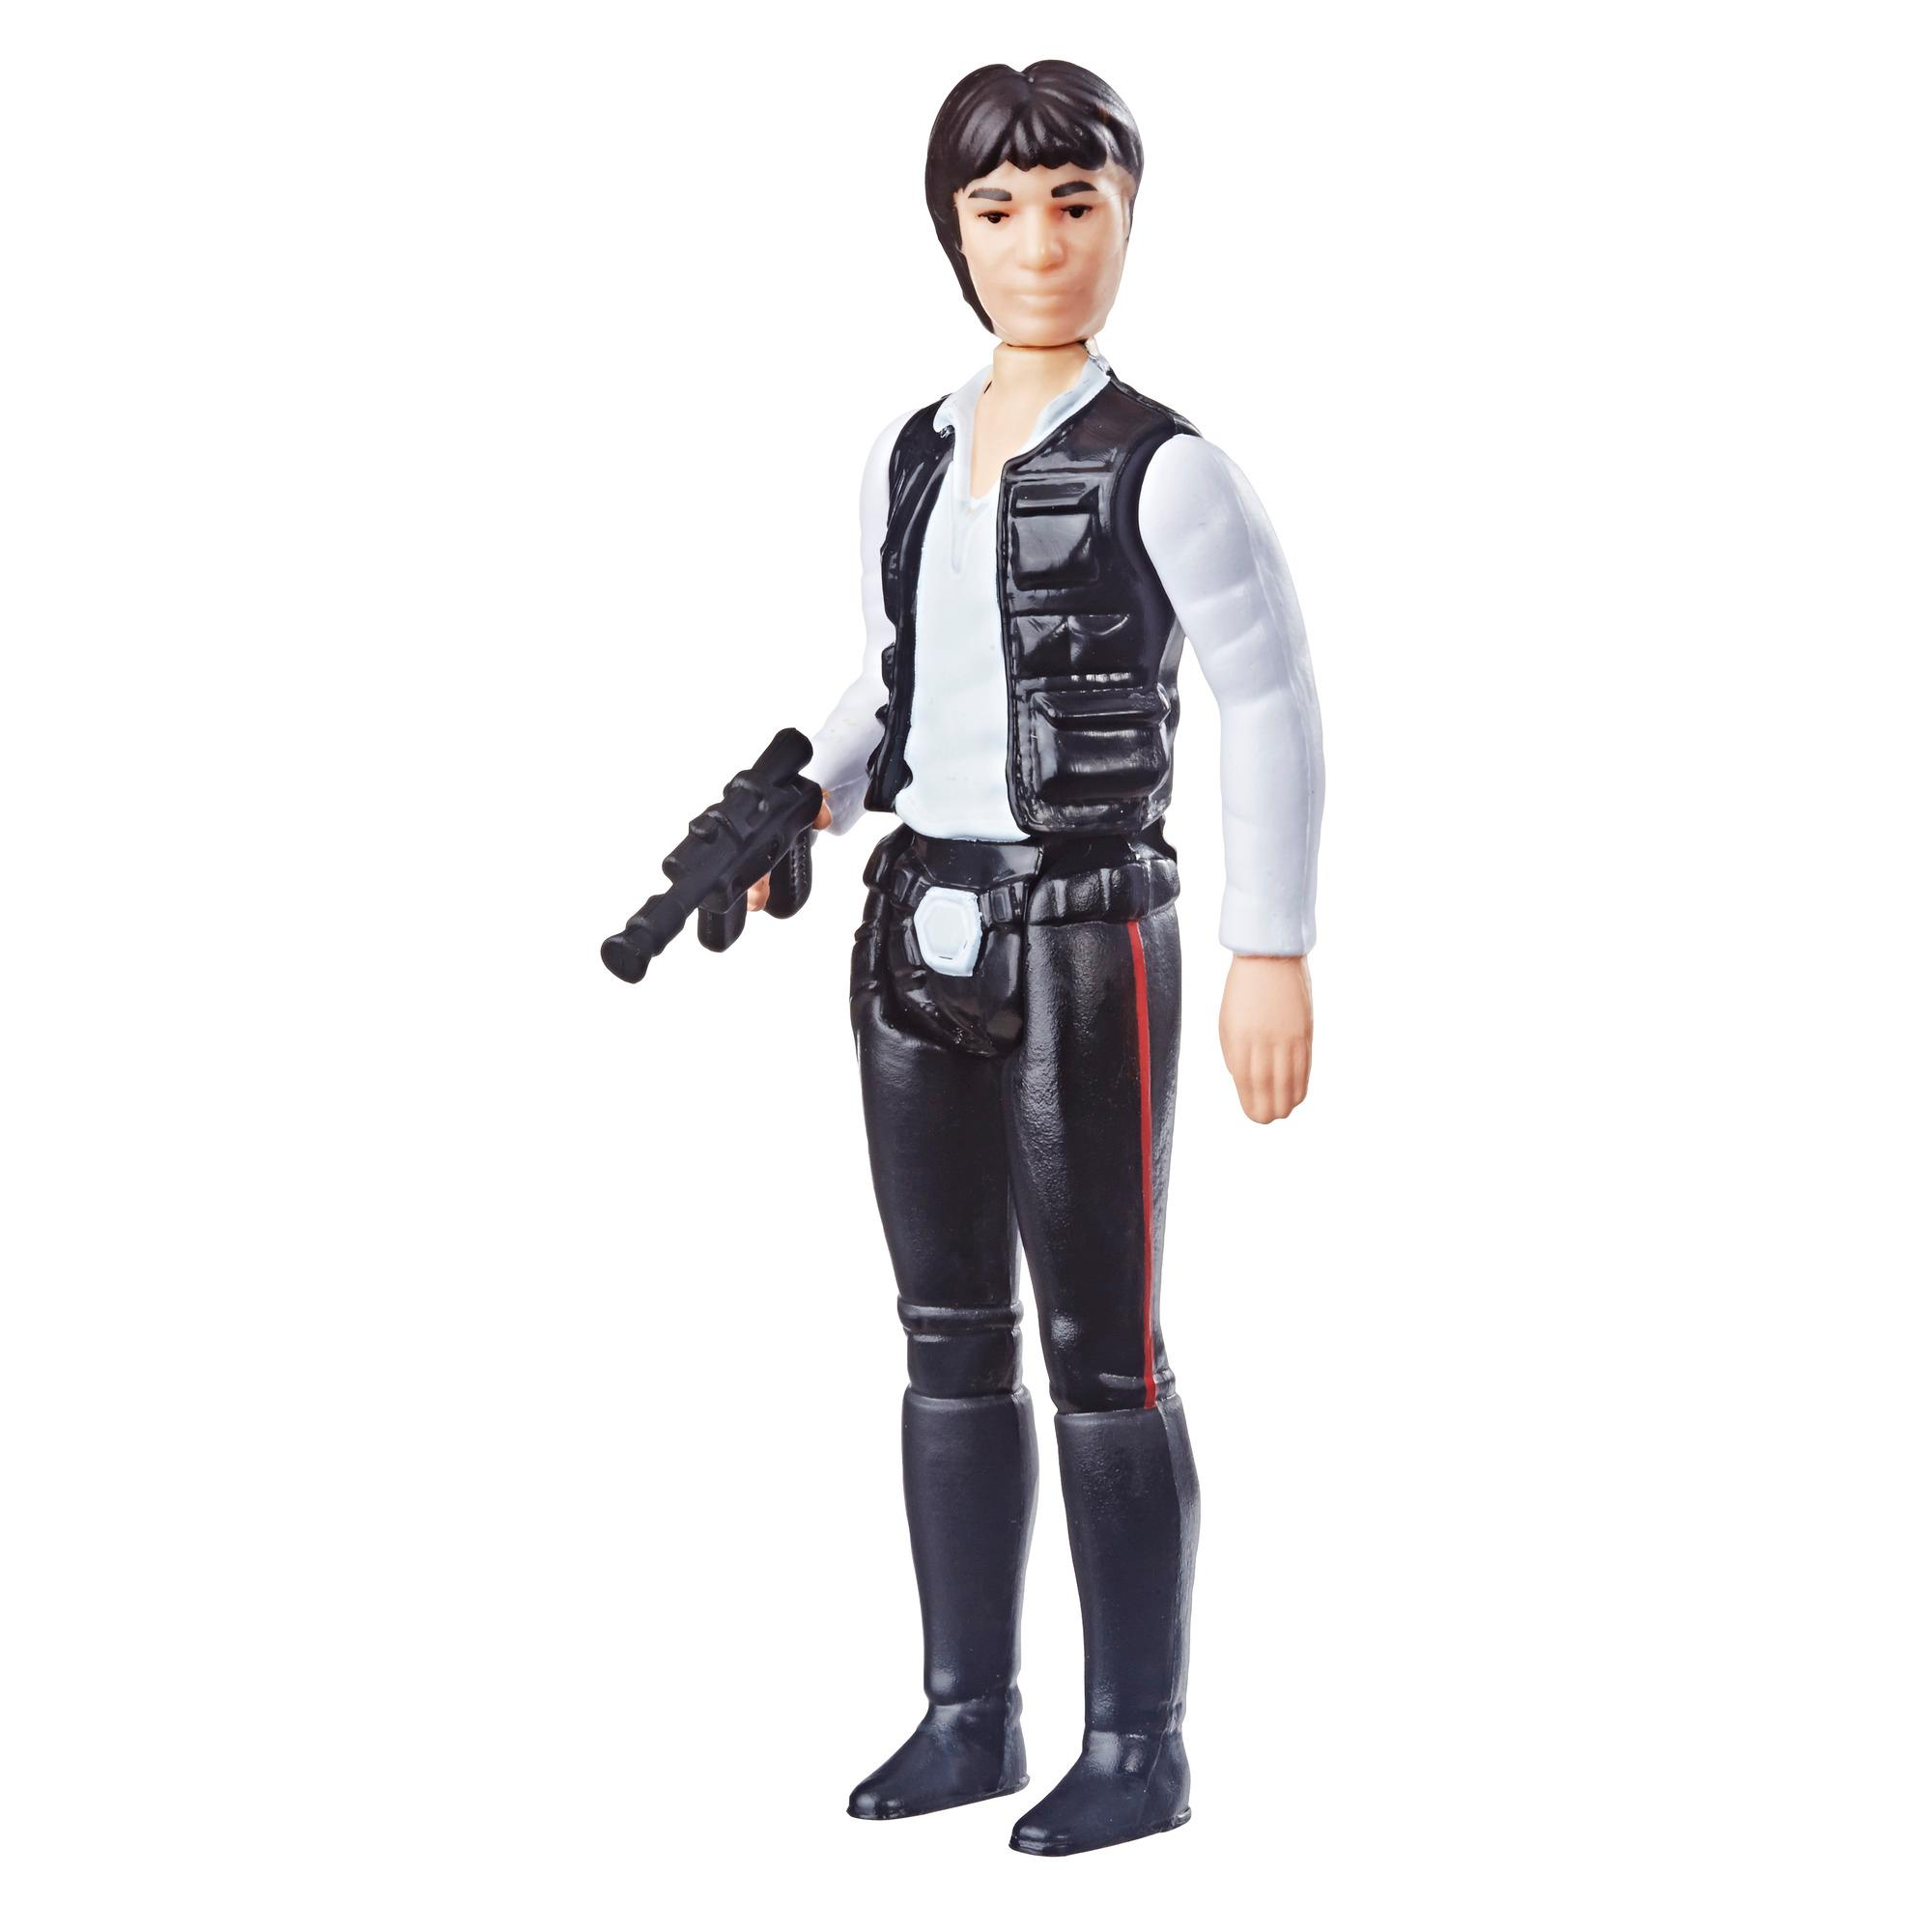 Star Wars Retro Collection Episode IV: A New Hope Han Solo 3.75-Inch-Scale Action Figure Toy – Inspired by Classic 1970s-Sculpt and Packaging Collectible Star Wars Figure